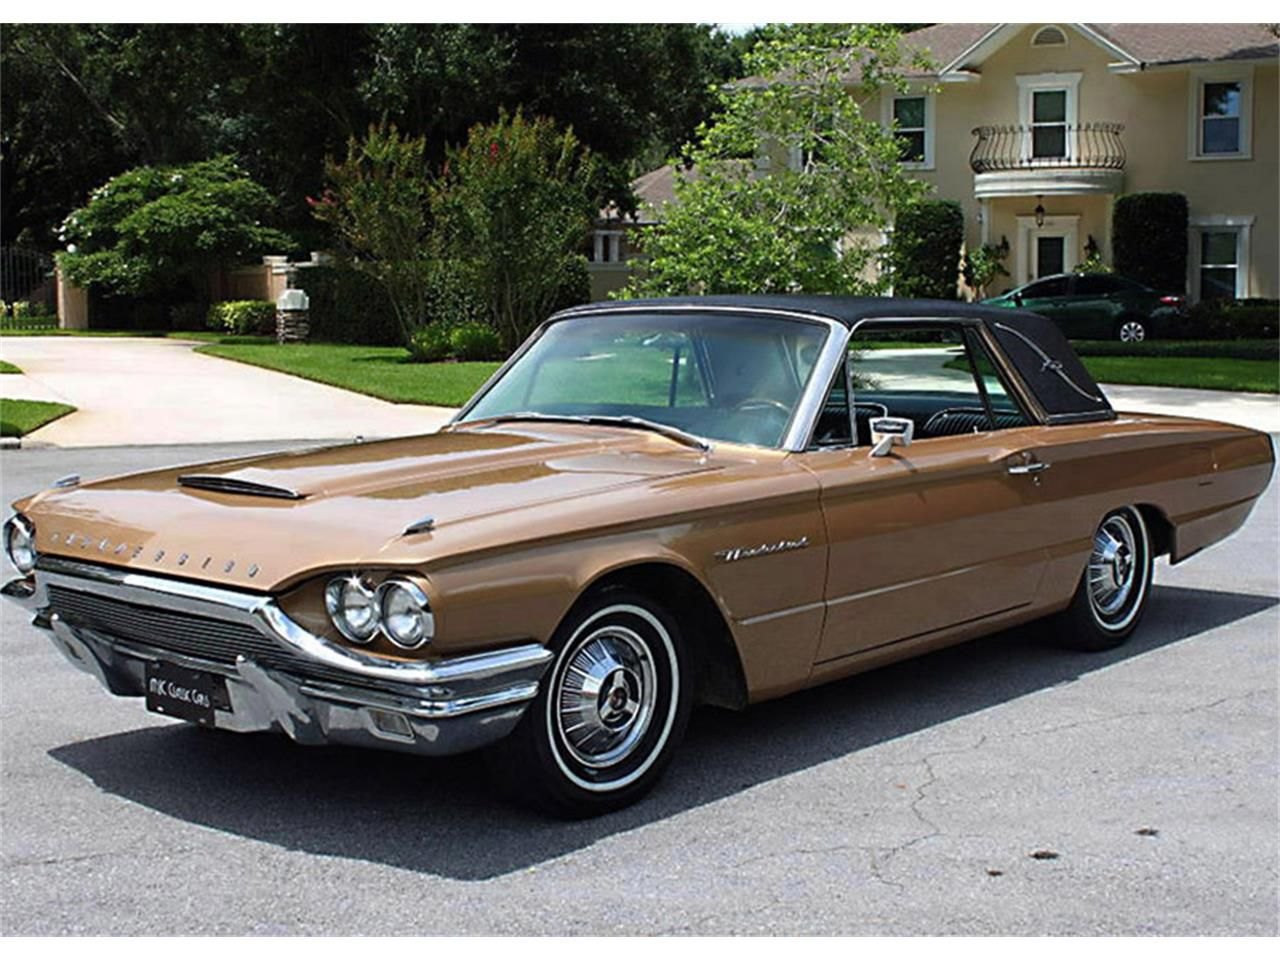 1964 Thunderbird With Images Ford Thunderbird Classic Cars